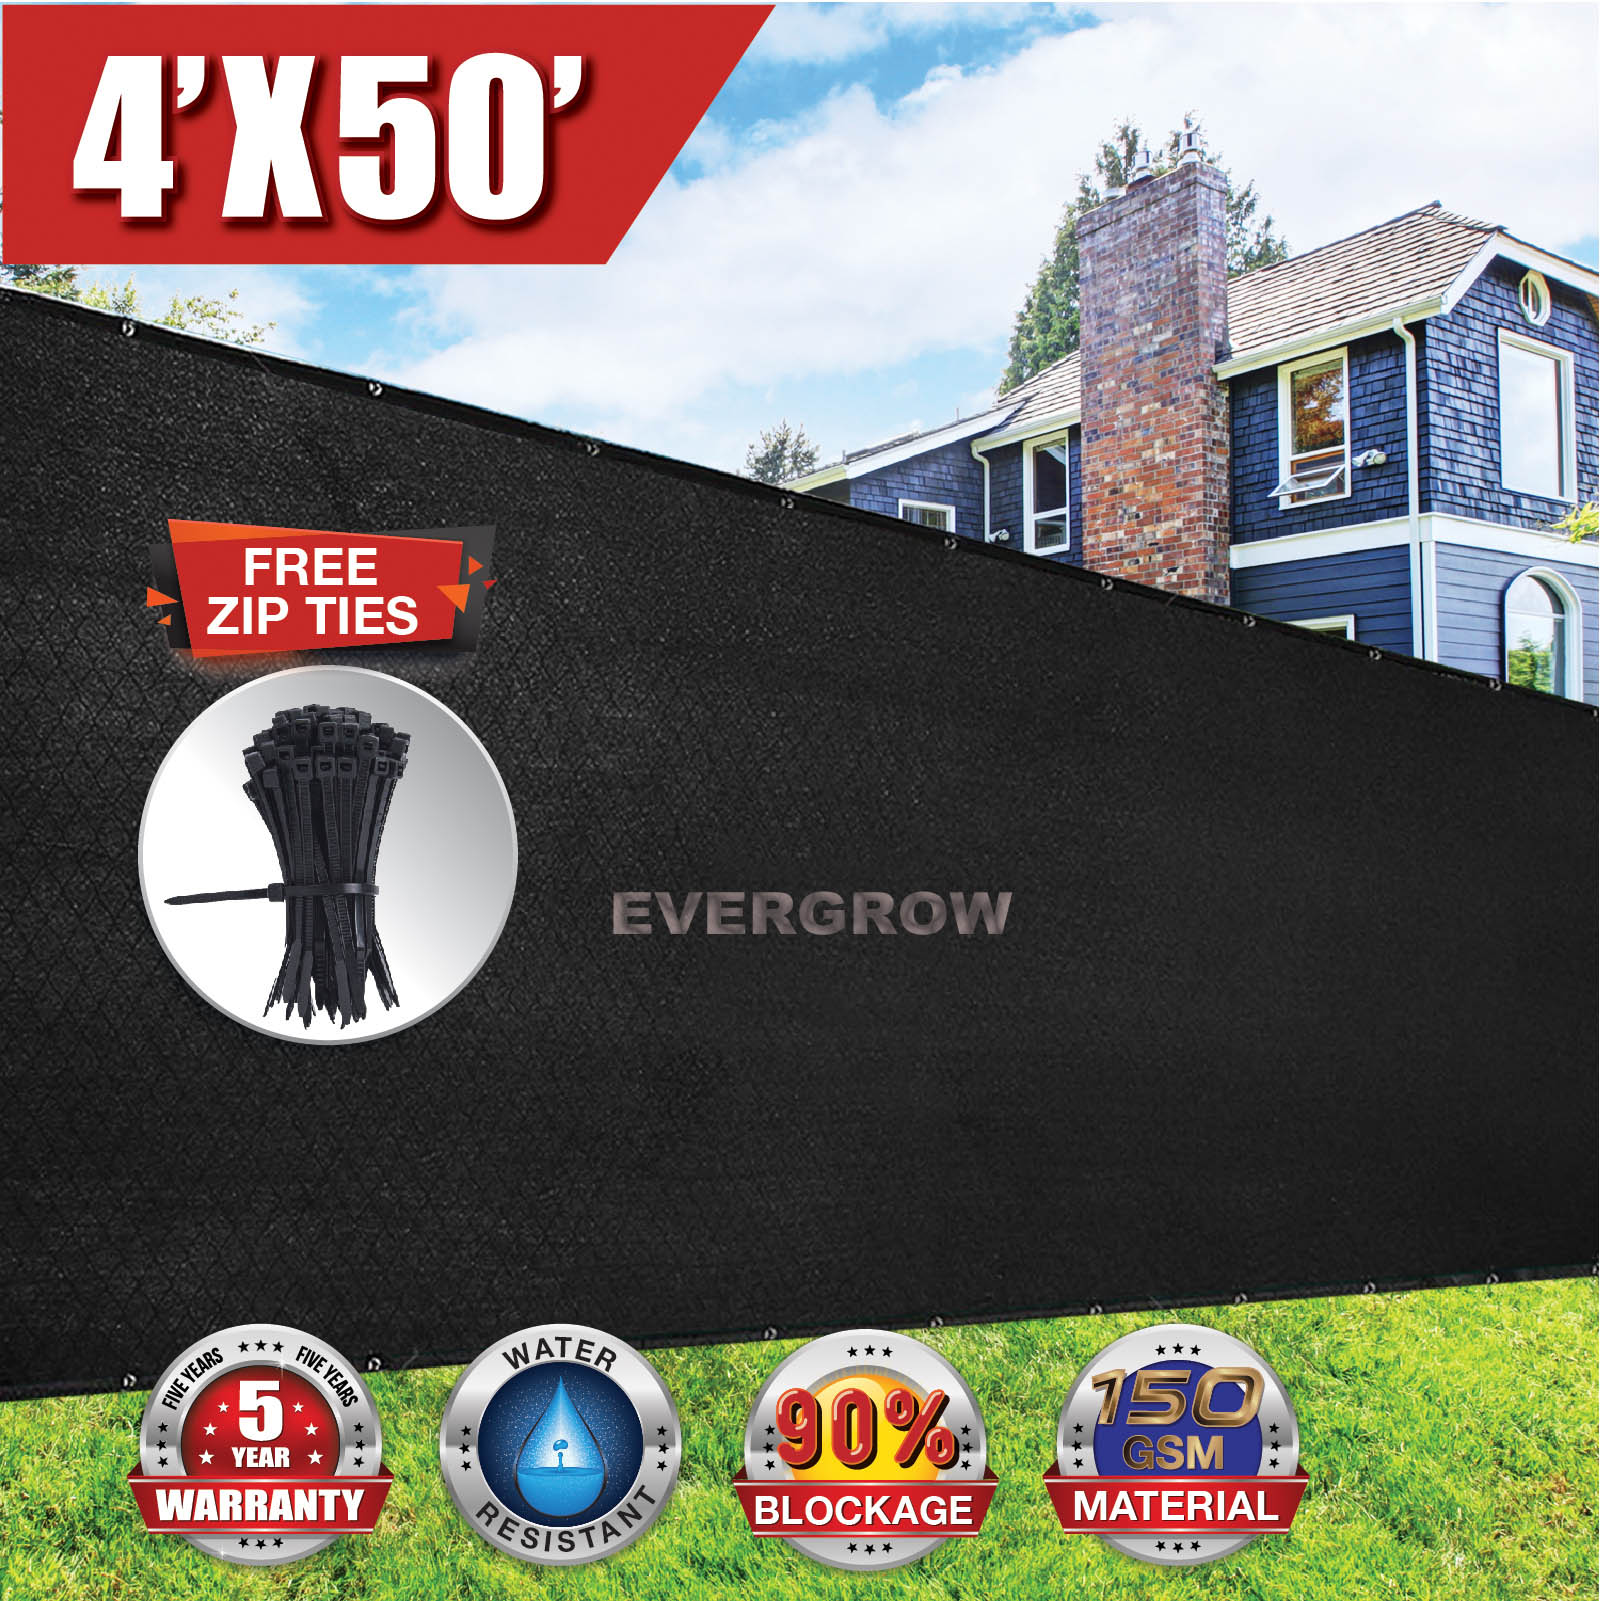 EVERGROW® 4' x 50' Black Privacy fence screen 150 GSM Heavy Duty Windscreen Fence Shade Netting Cover Outdoor Patio 90% UV Blockage FREE Zip Ties 5 Years Warranty (G-FENCE-4X50-BLACK)